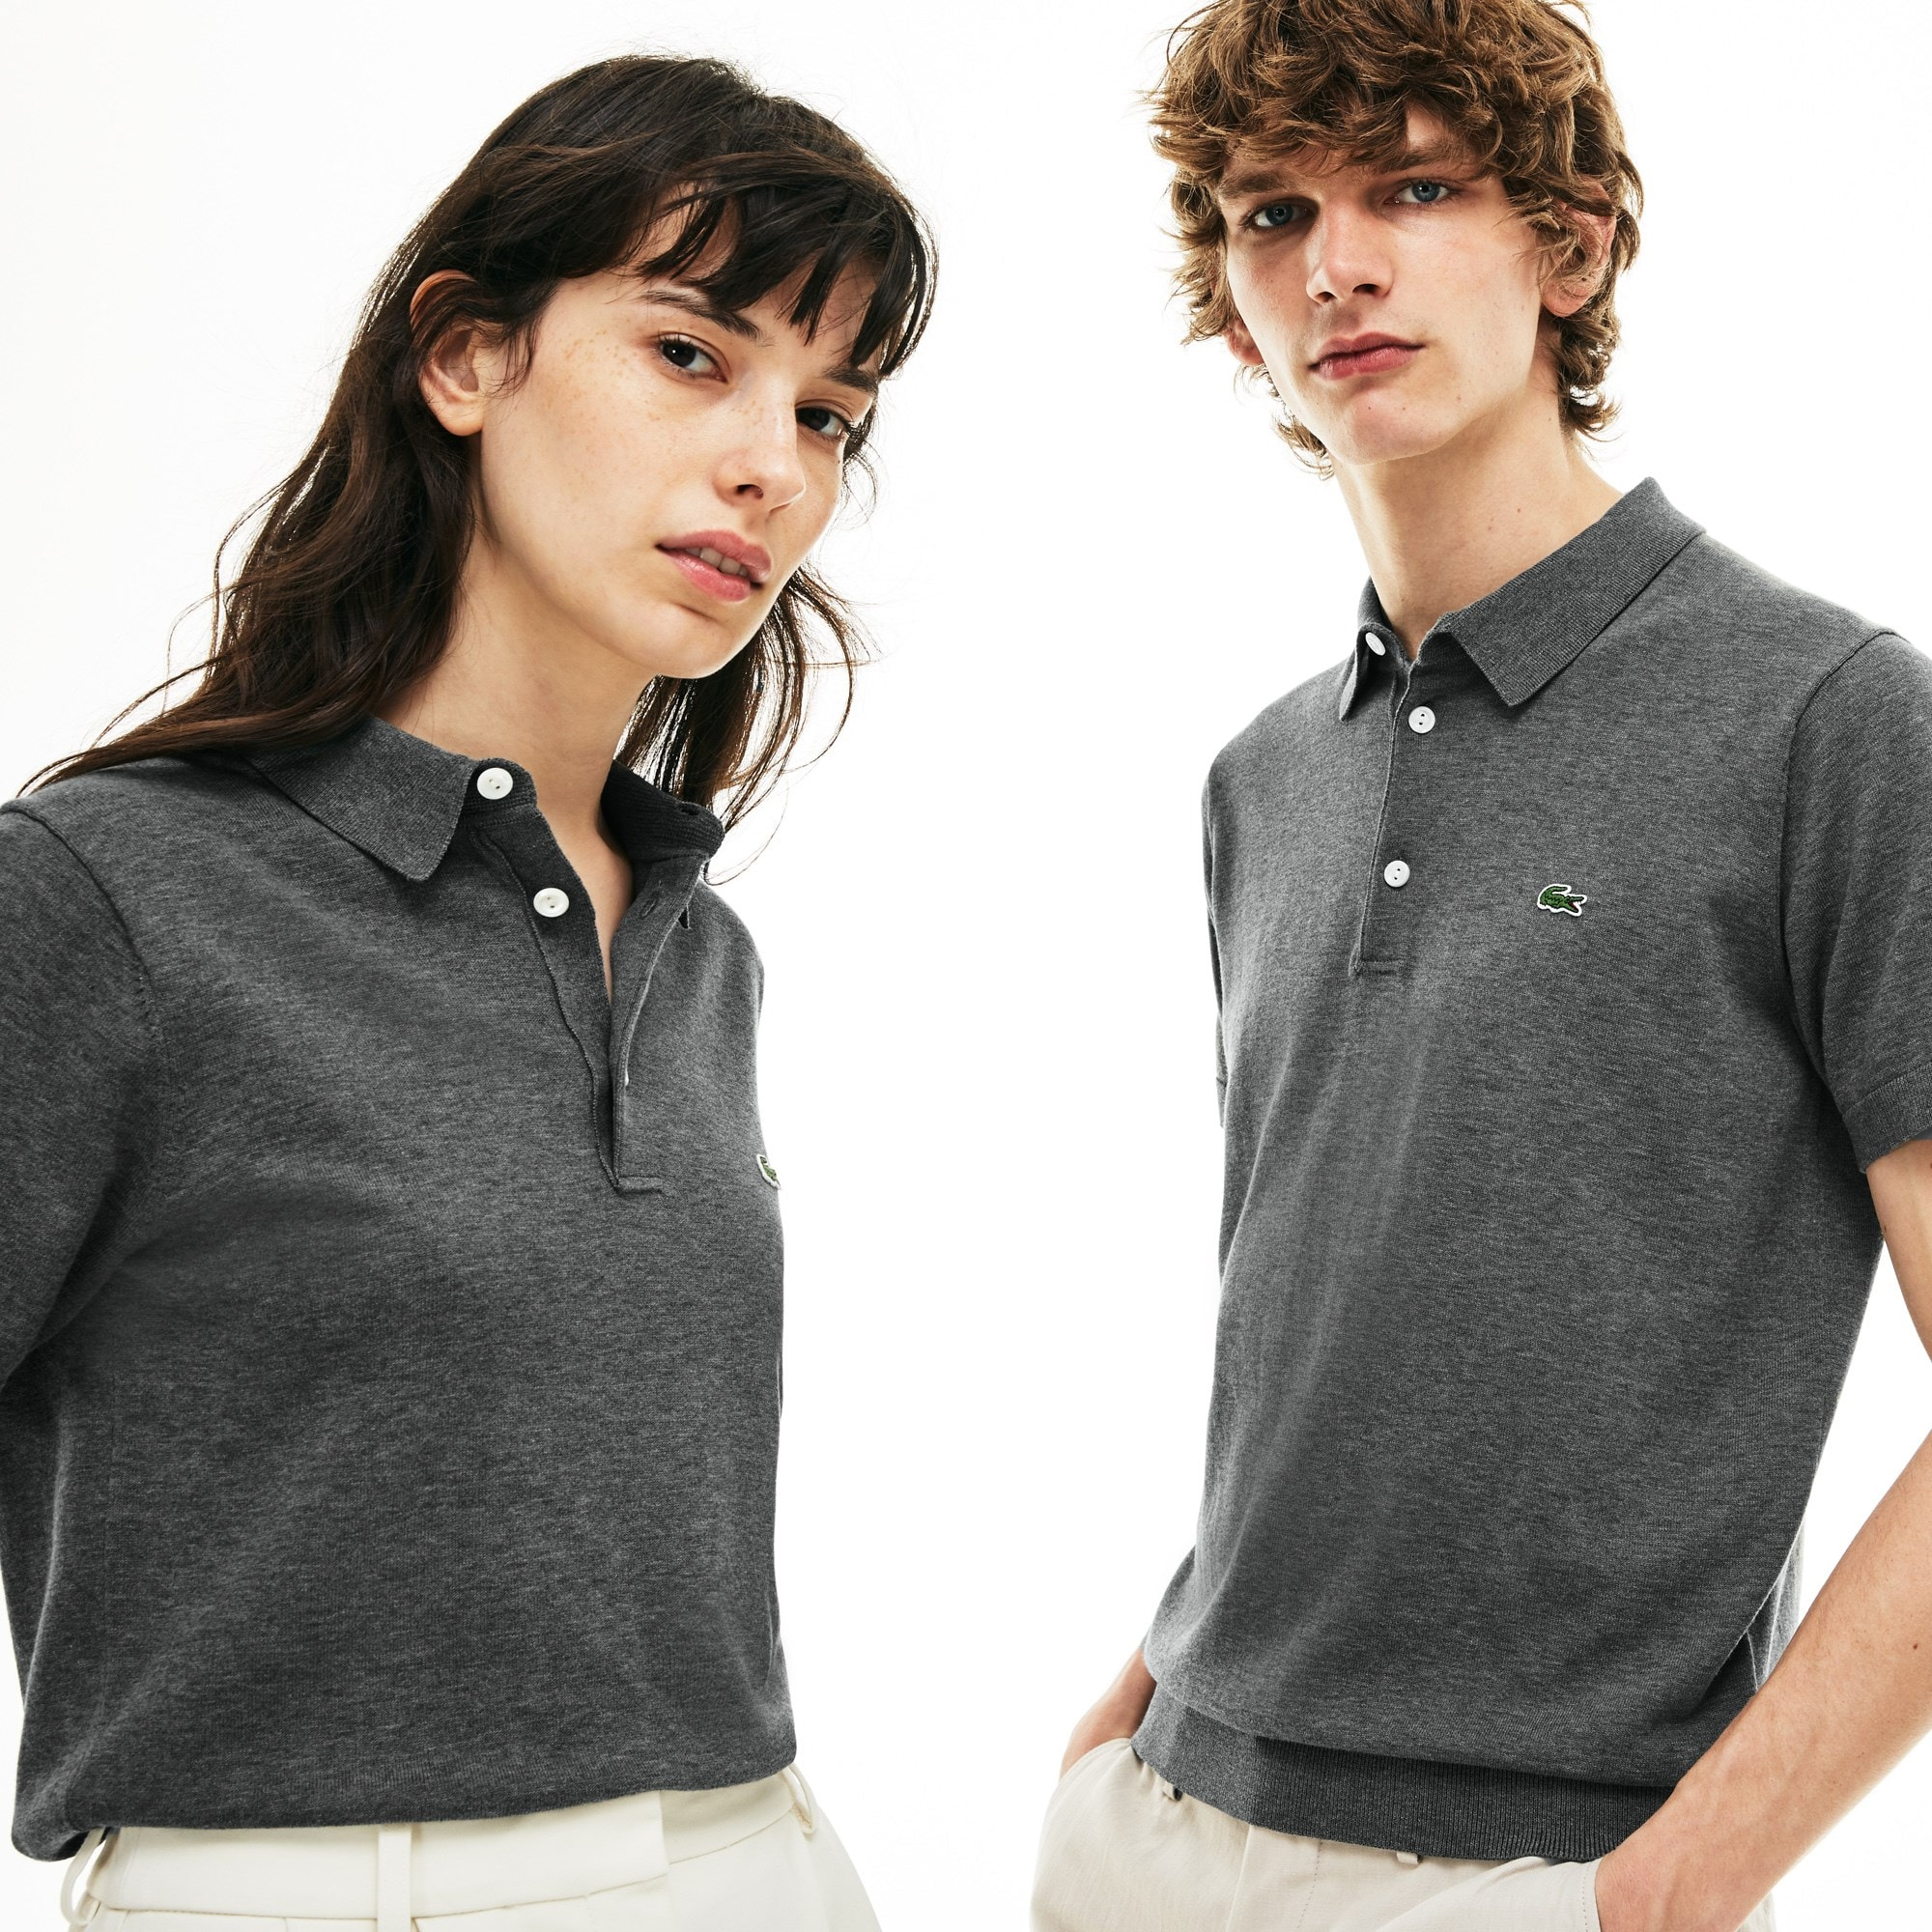 Unisex 1940s revival 85th Anniversary Limited Edition Flecked Jersey Polo